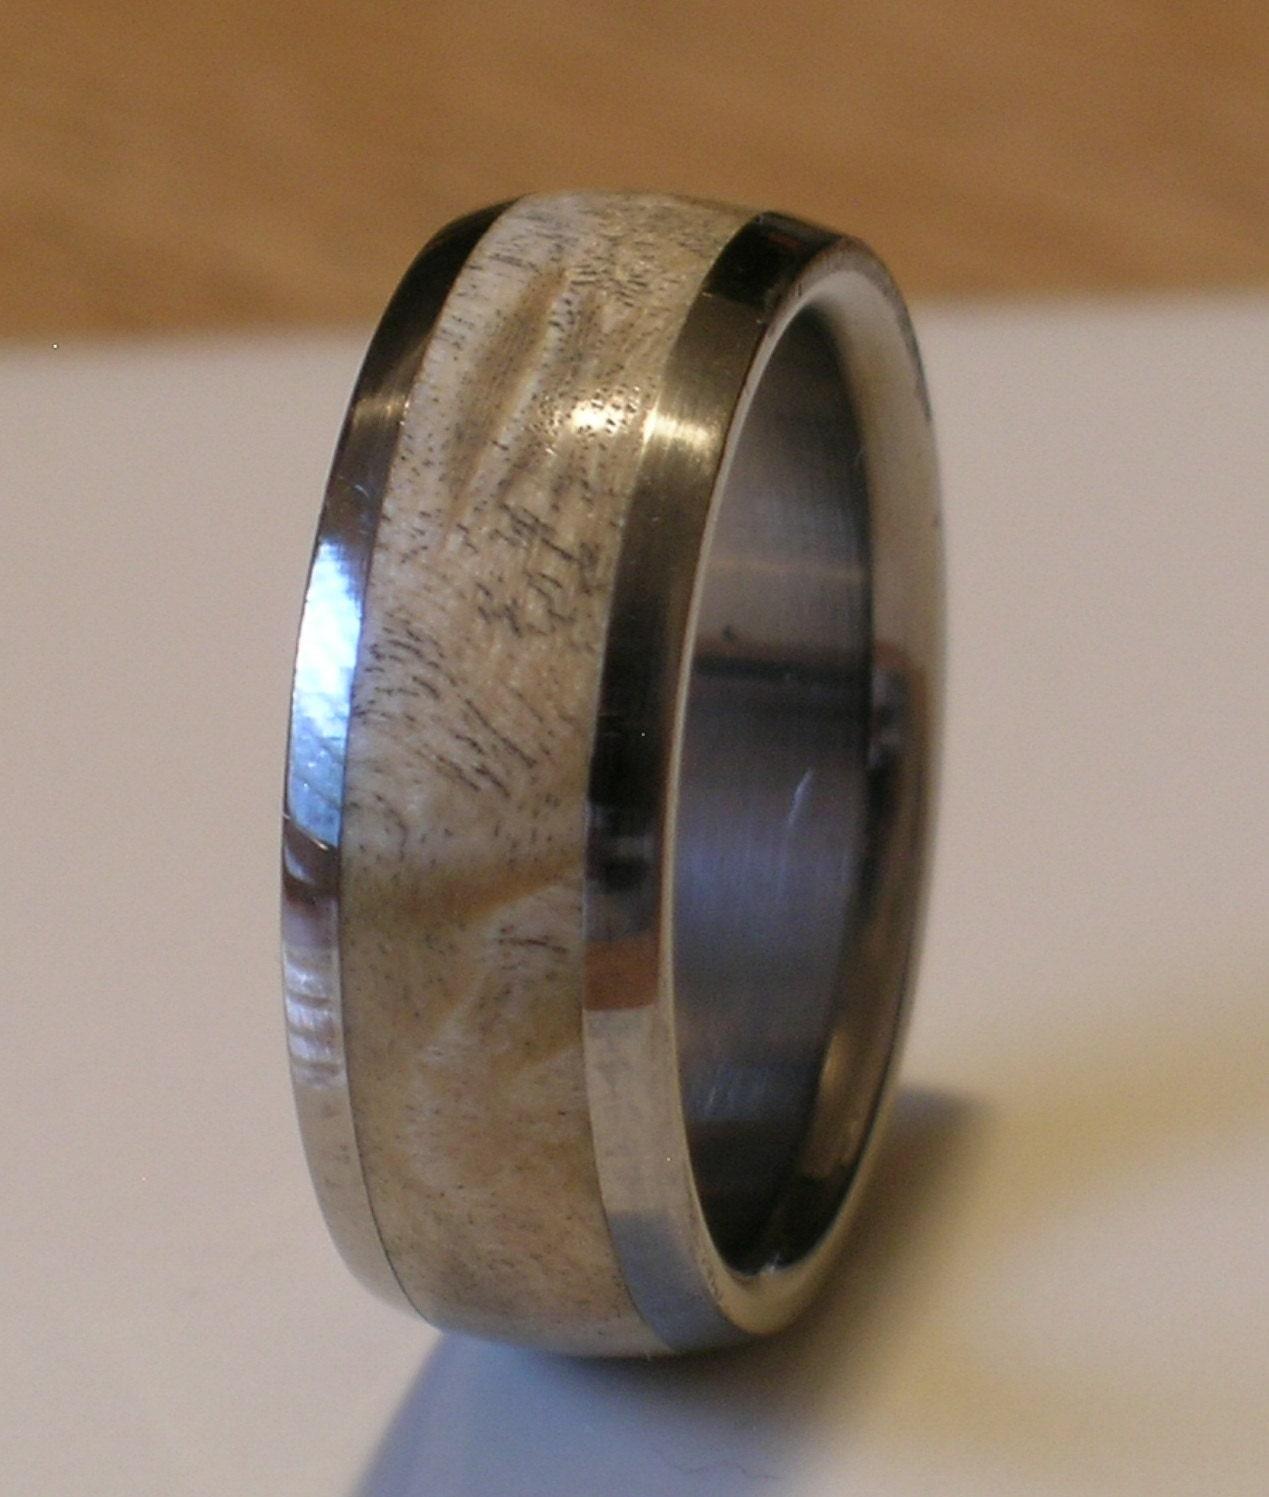 coolest mens wedding rings men's wedding bands Tungsten Wedding Band Natural Maple Burl Wood Inlay by usajewelry